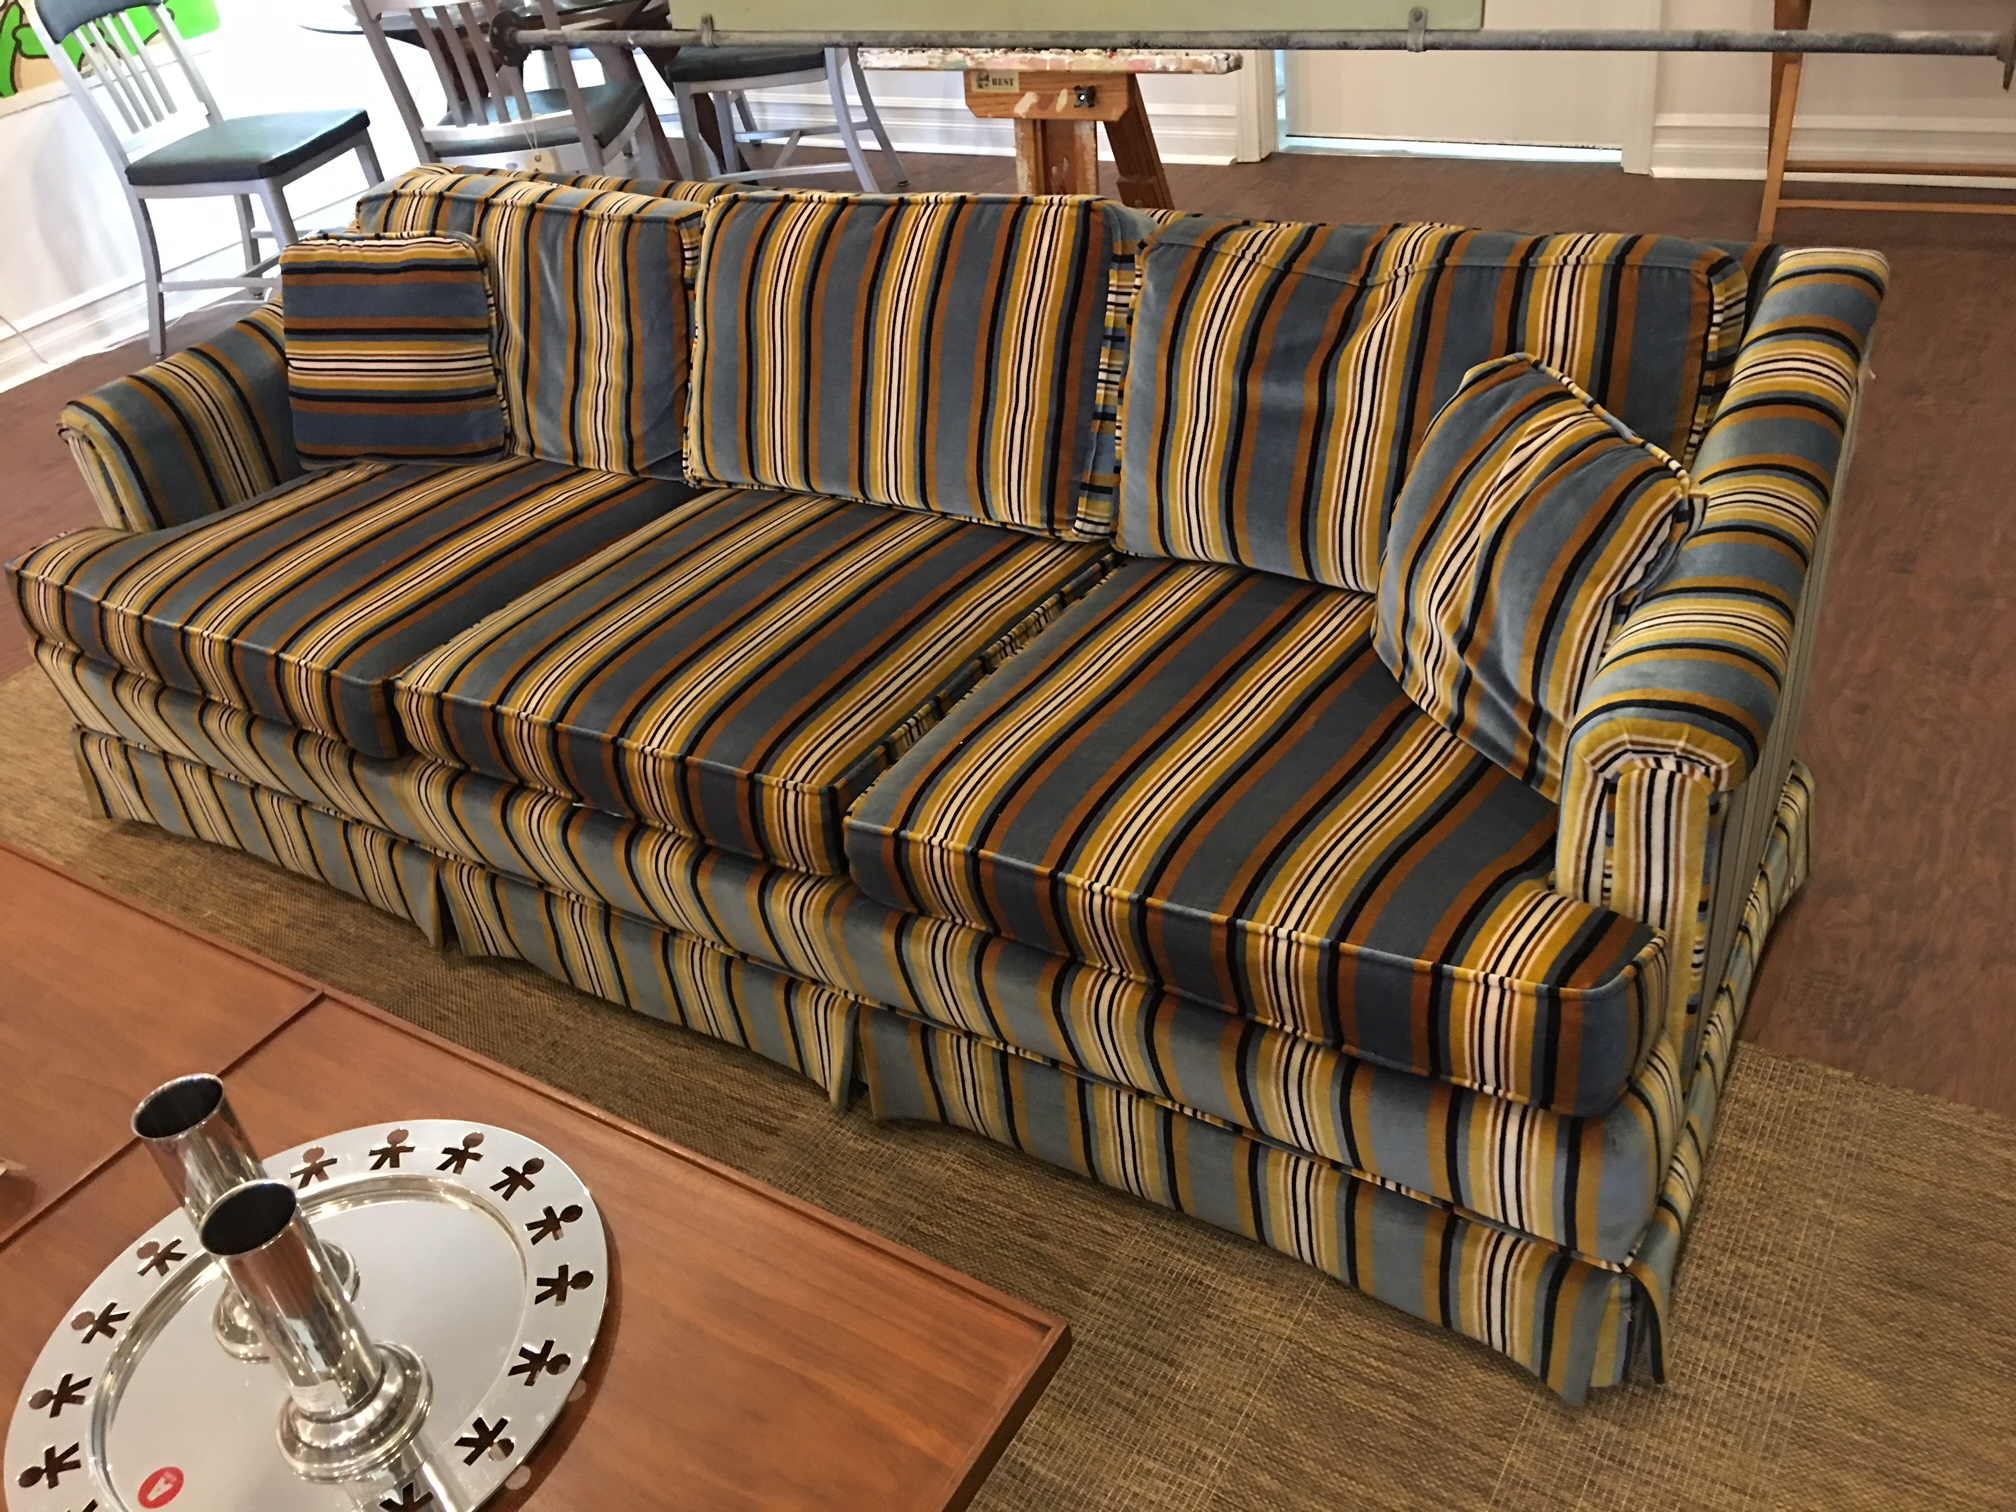 Matched sofa (shown here) and love seat by Henredon in sophisticated striped velvet (possibly a Jack Lenor Larsen textile). Exceptional vintage condition.   $1250 the pair